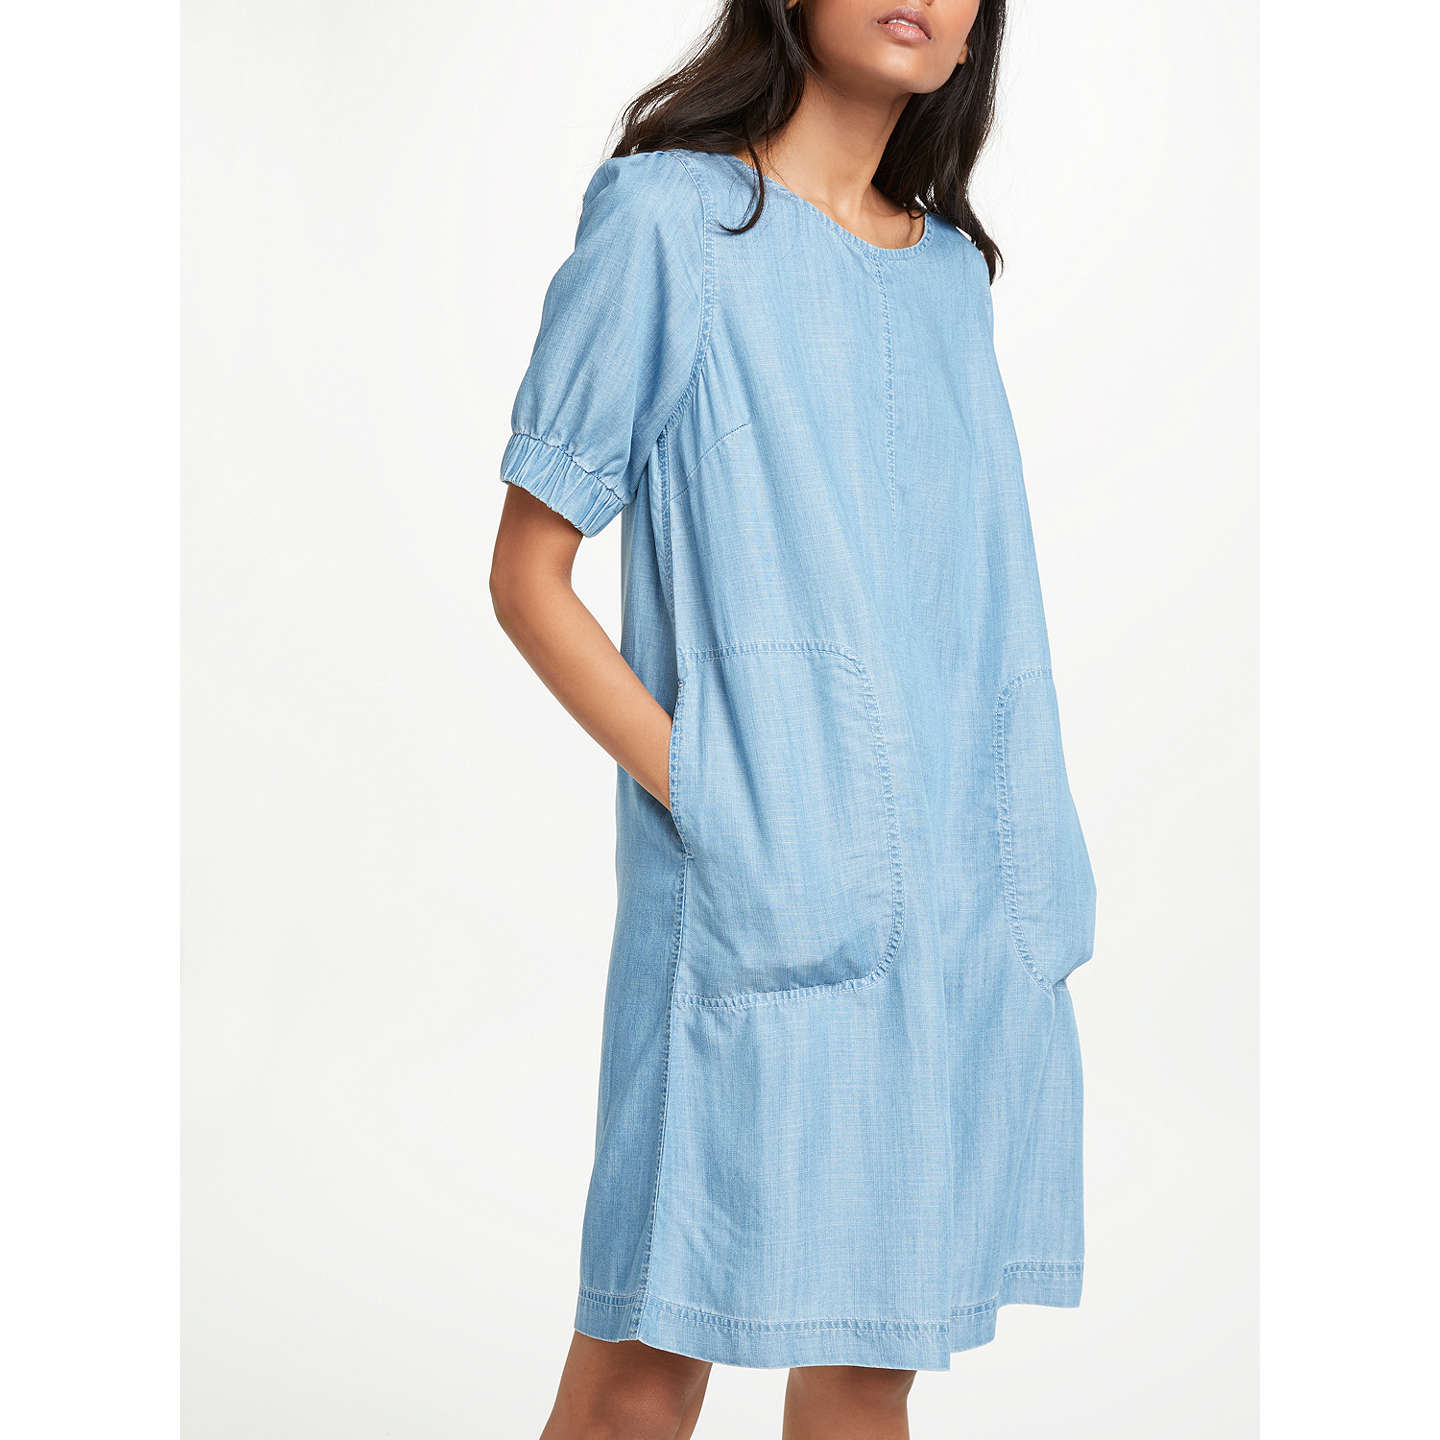 AND/OR Sleeve Detail Dress, Blue at John Lewis